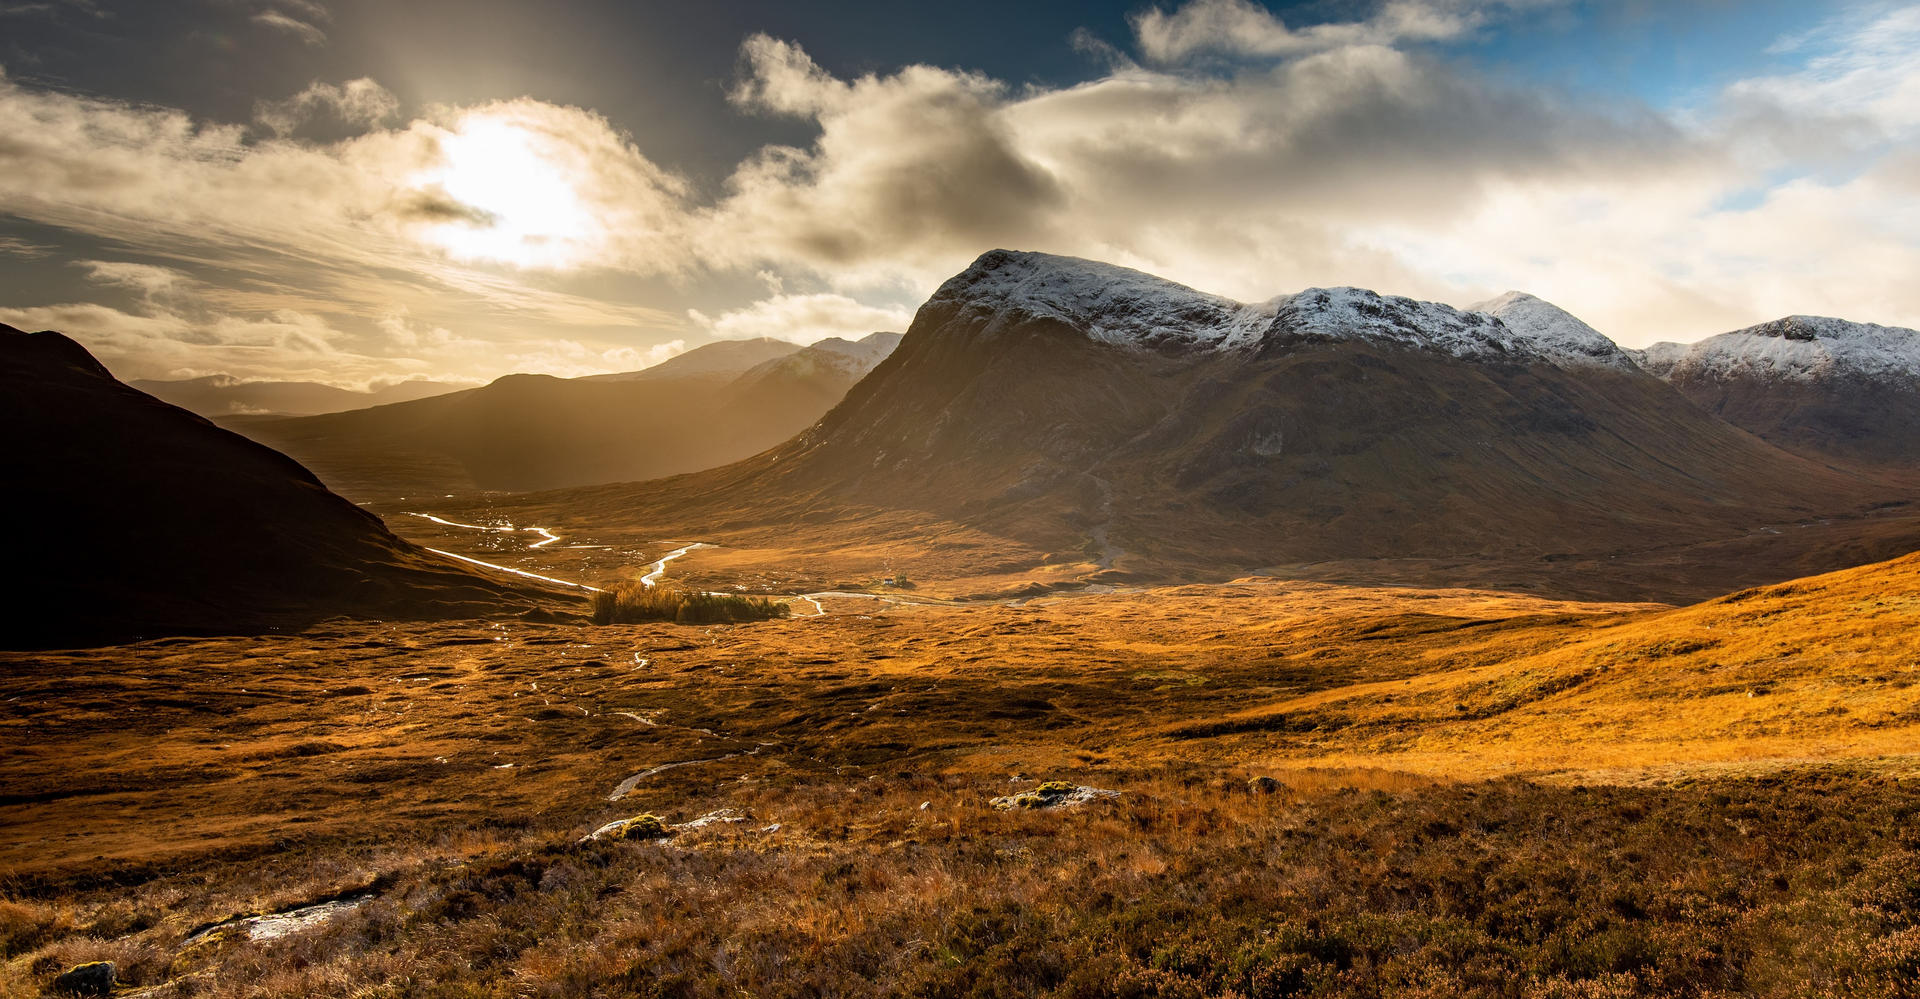 moutnains of glencoe scotland with sunny skye and brown heather